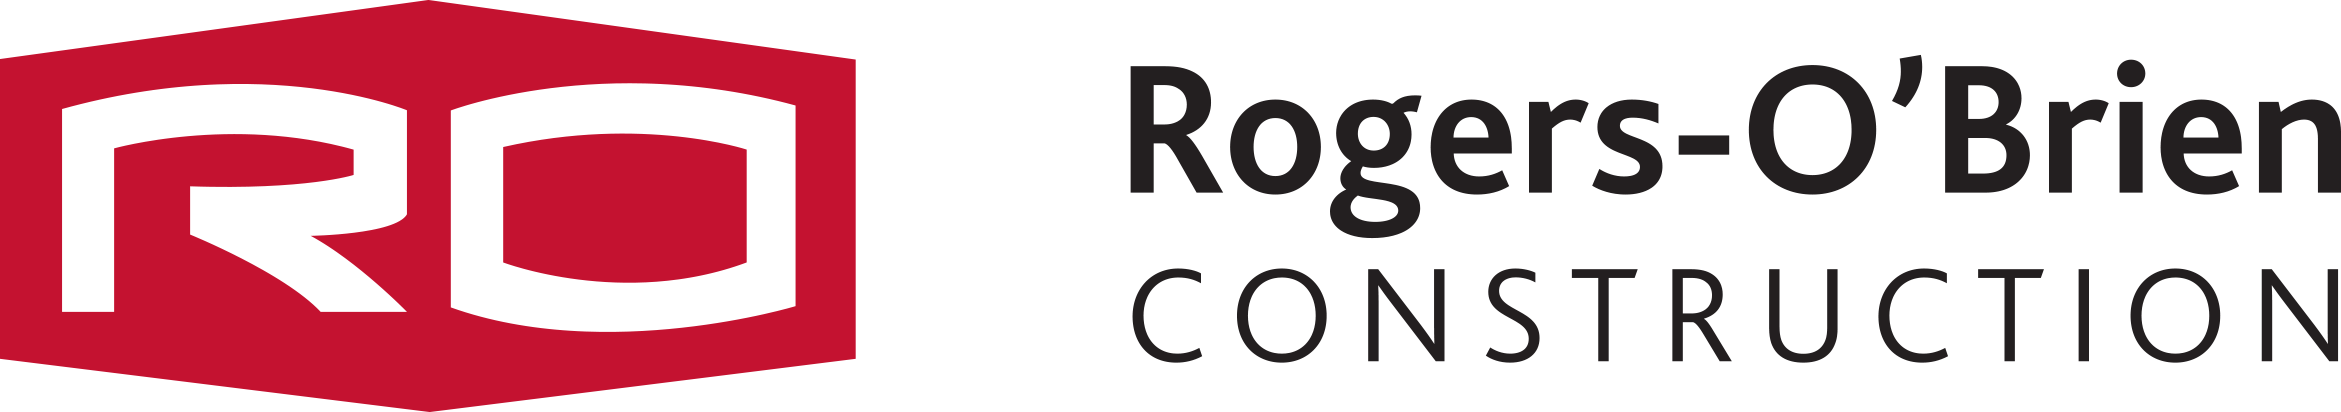 CELEBRATE ARCHITECTURE 2020 - Rogers-O'Brien Construction logo